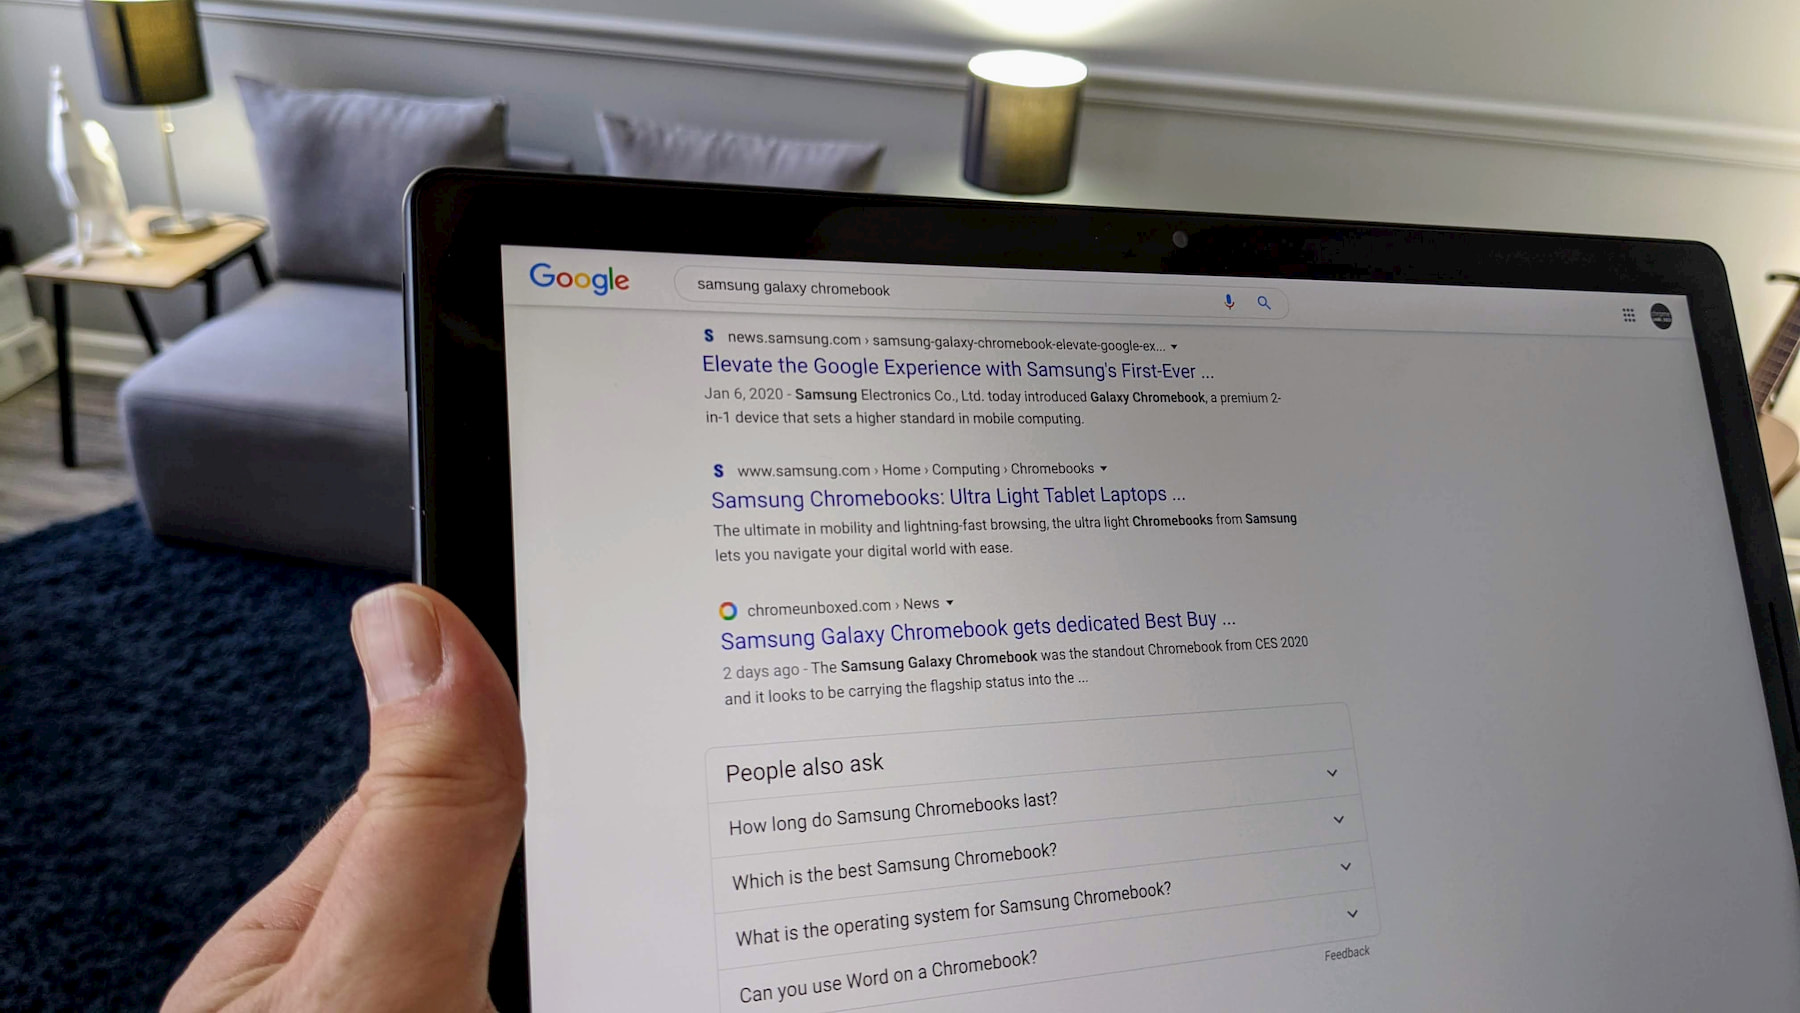 Google adds subtle change to make search results more recognizable